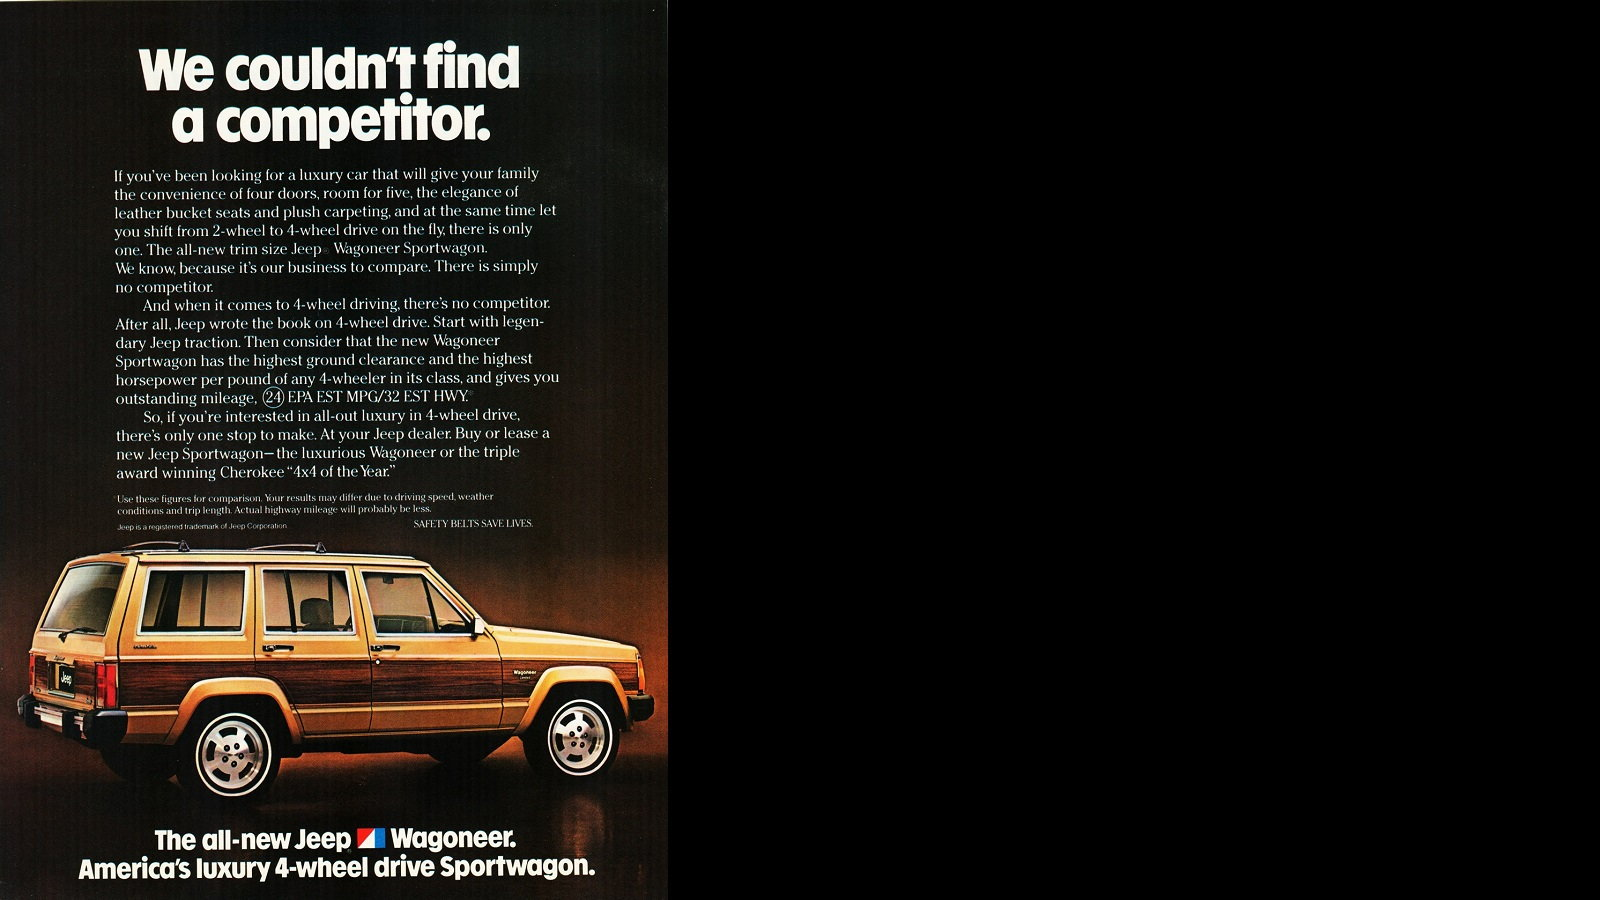 The Wagoneer has no competition